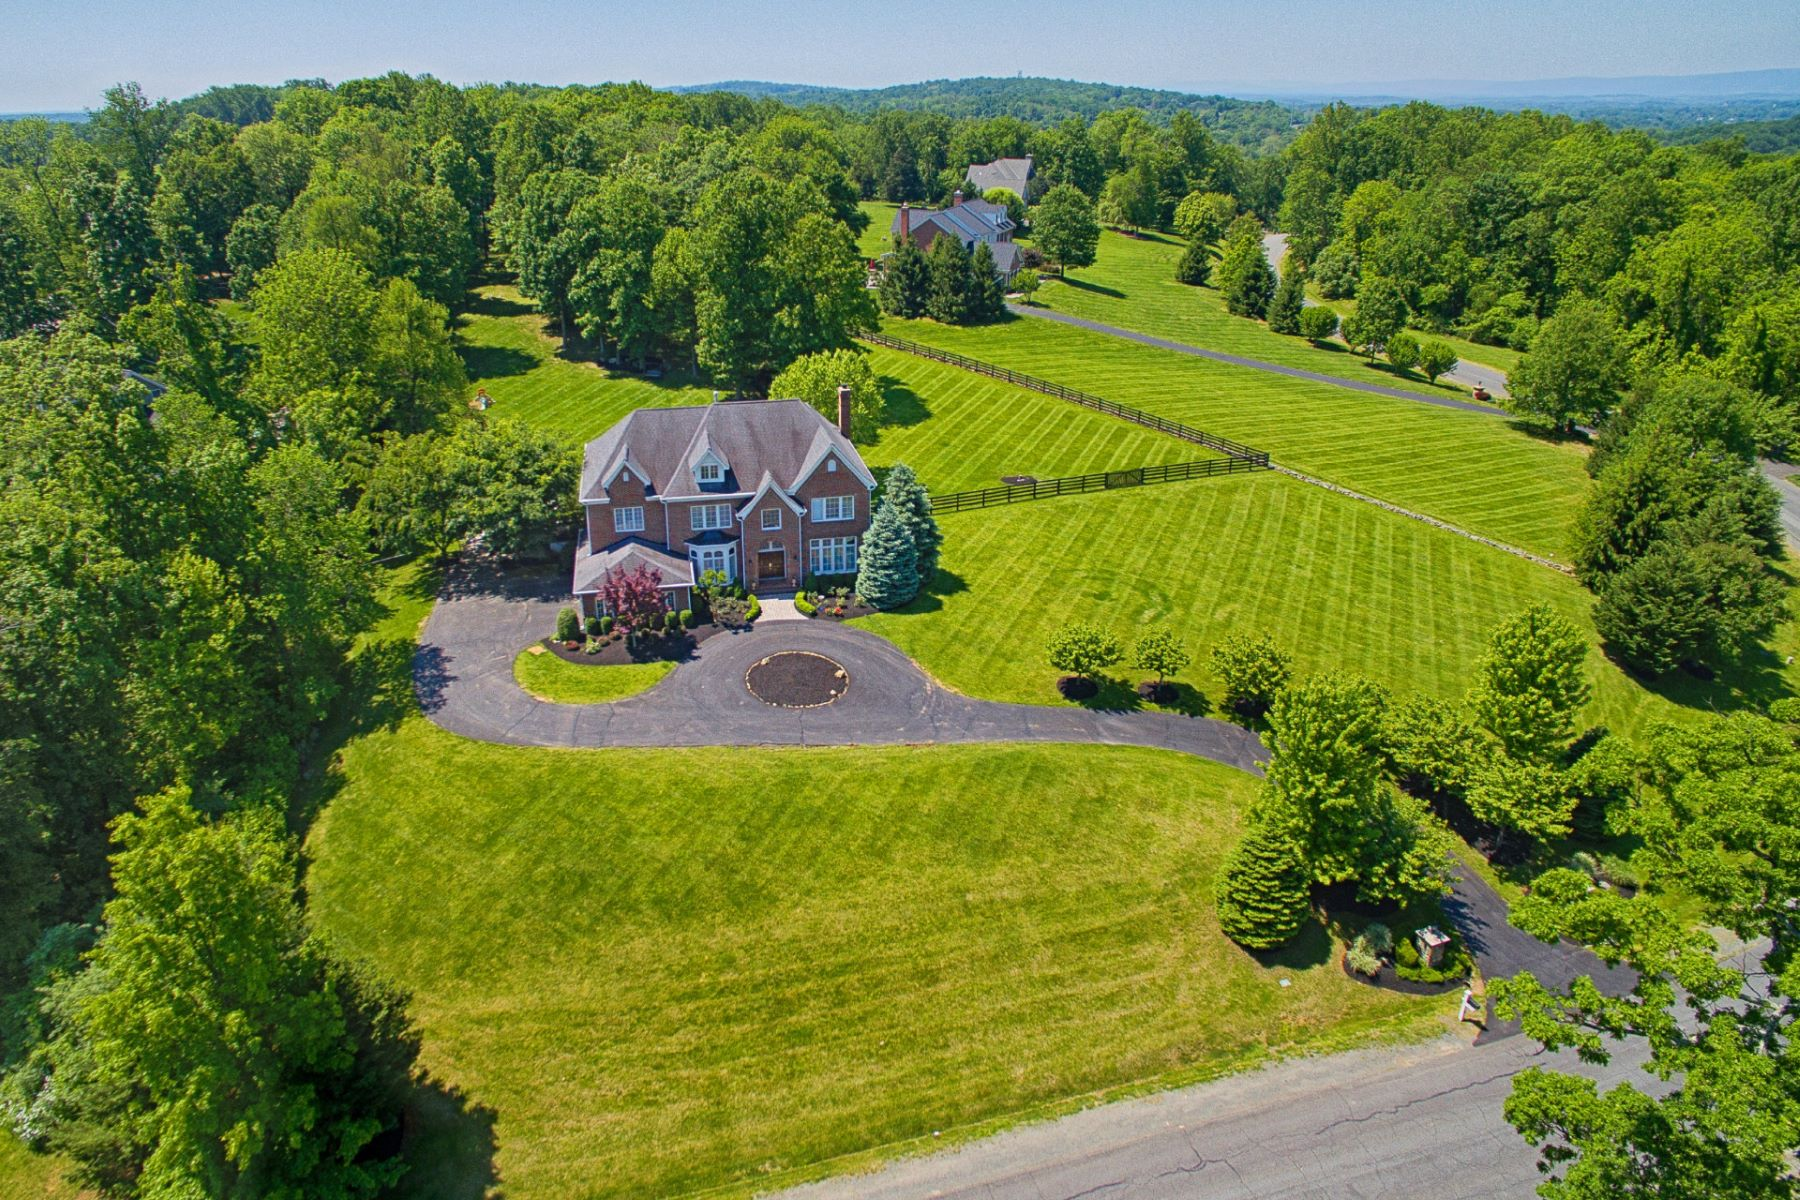 Single Family Home for Sale at Elegant Country Estate 40425 Beacon Hill Drive, Leesburg, 20176 Leesburg, Virginia, 20176 United States